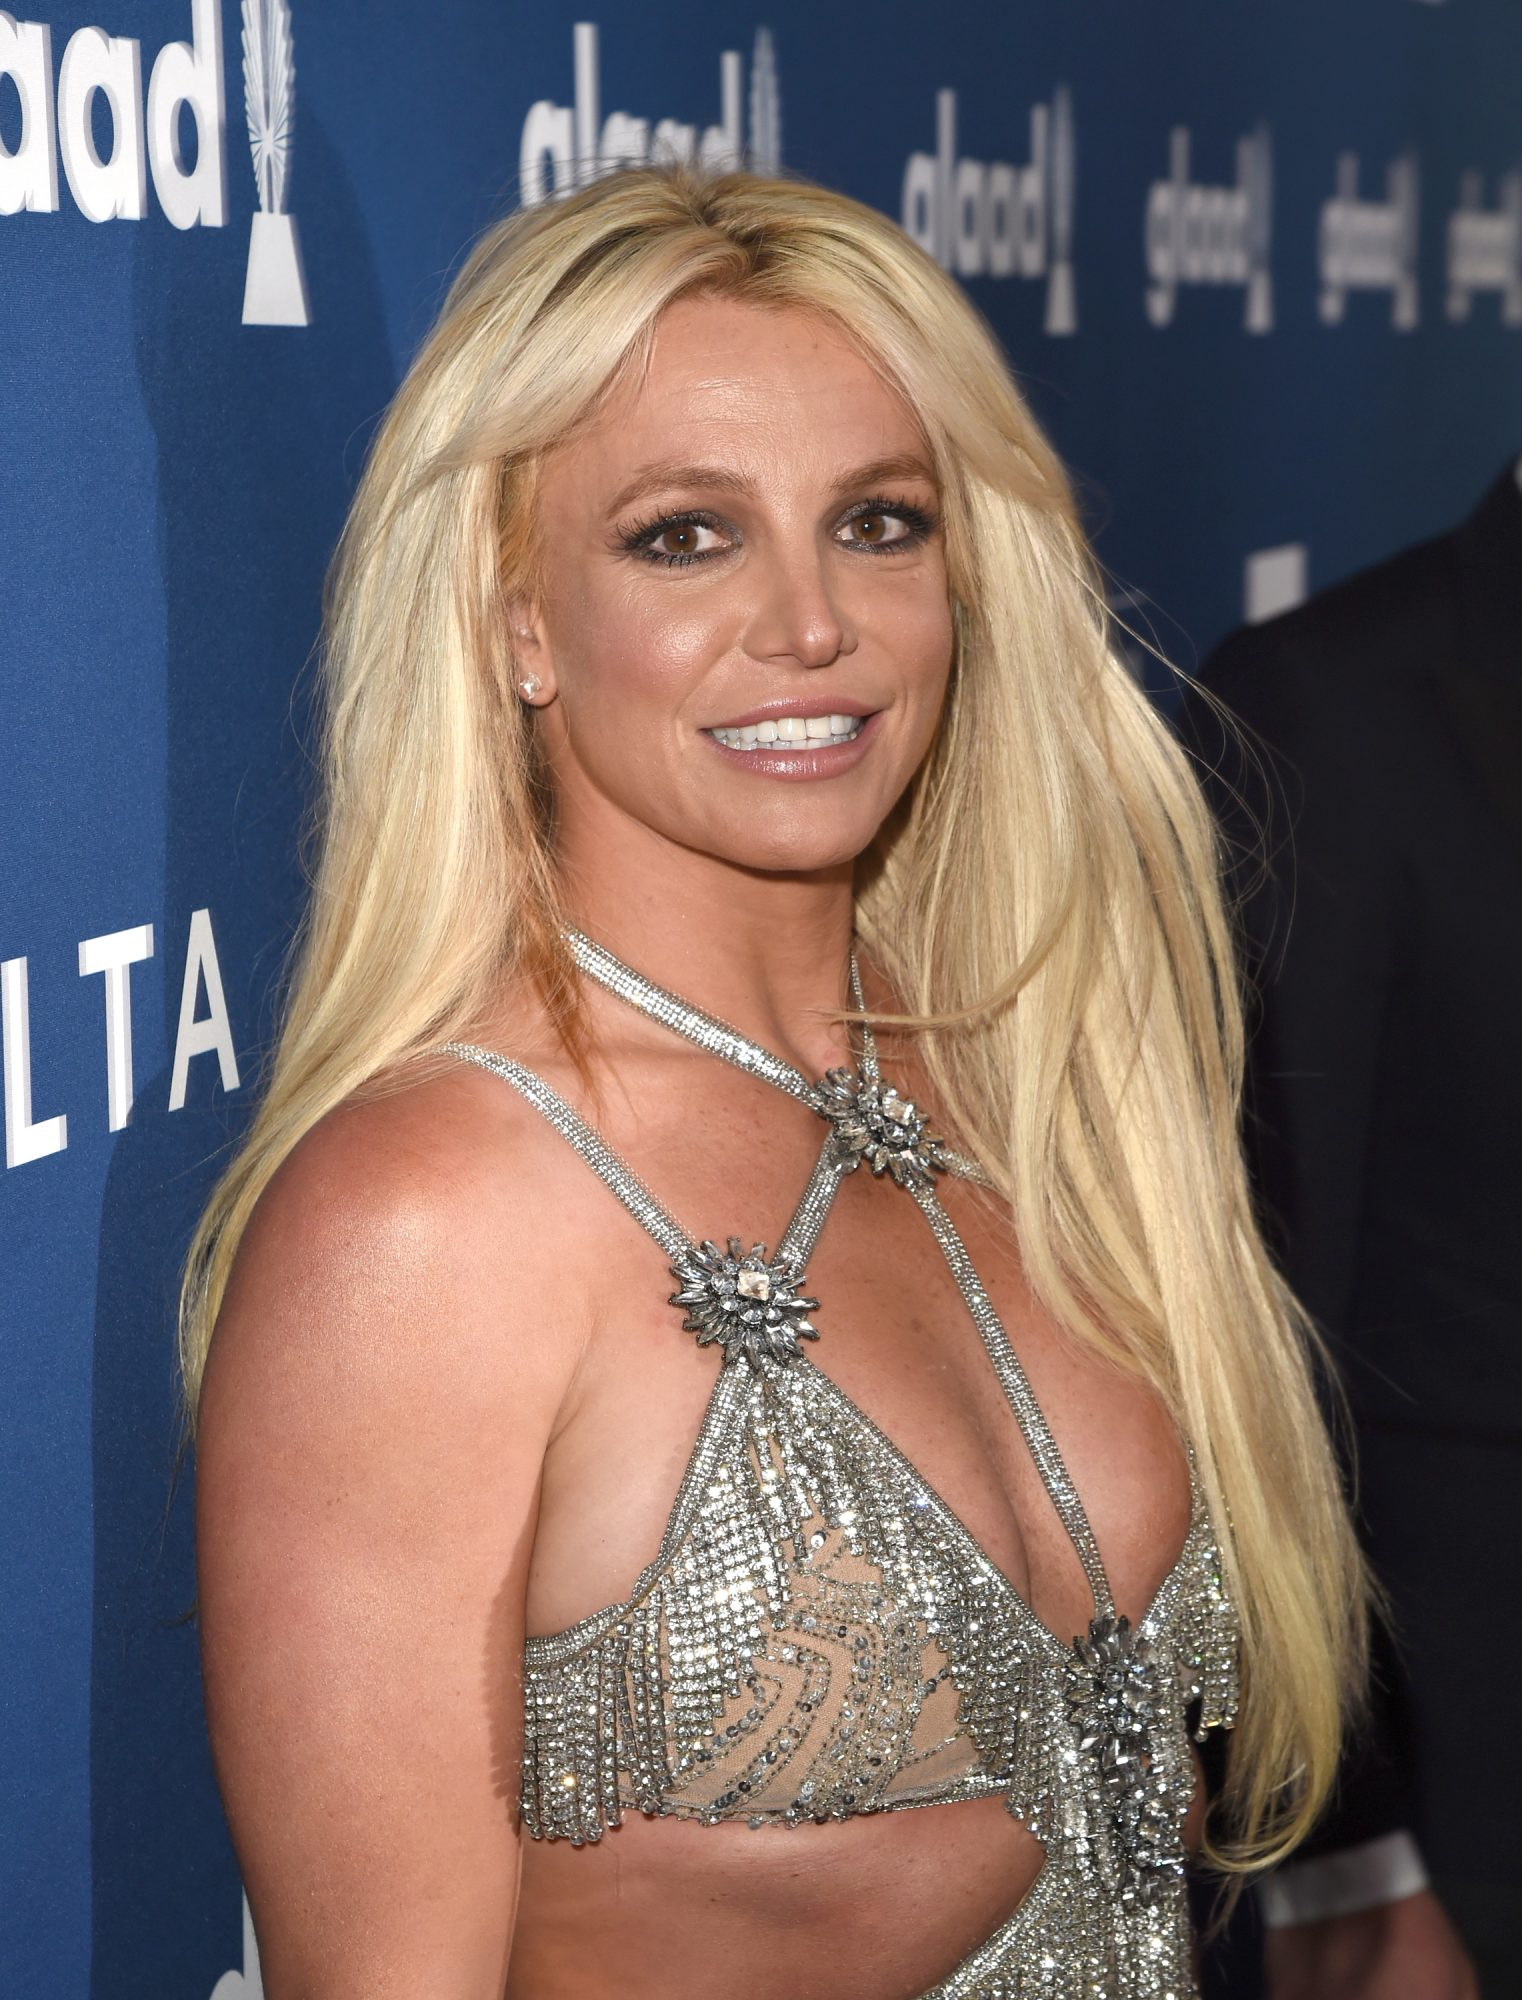 Britney Spears Issued a New Restraining Order Against Her Ex-Manager